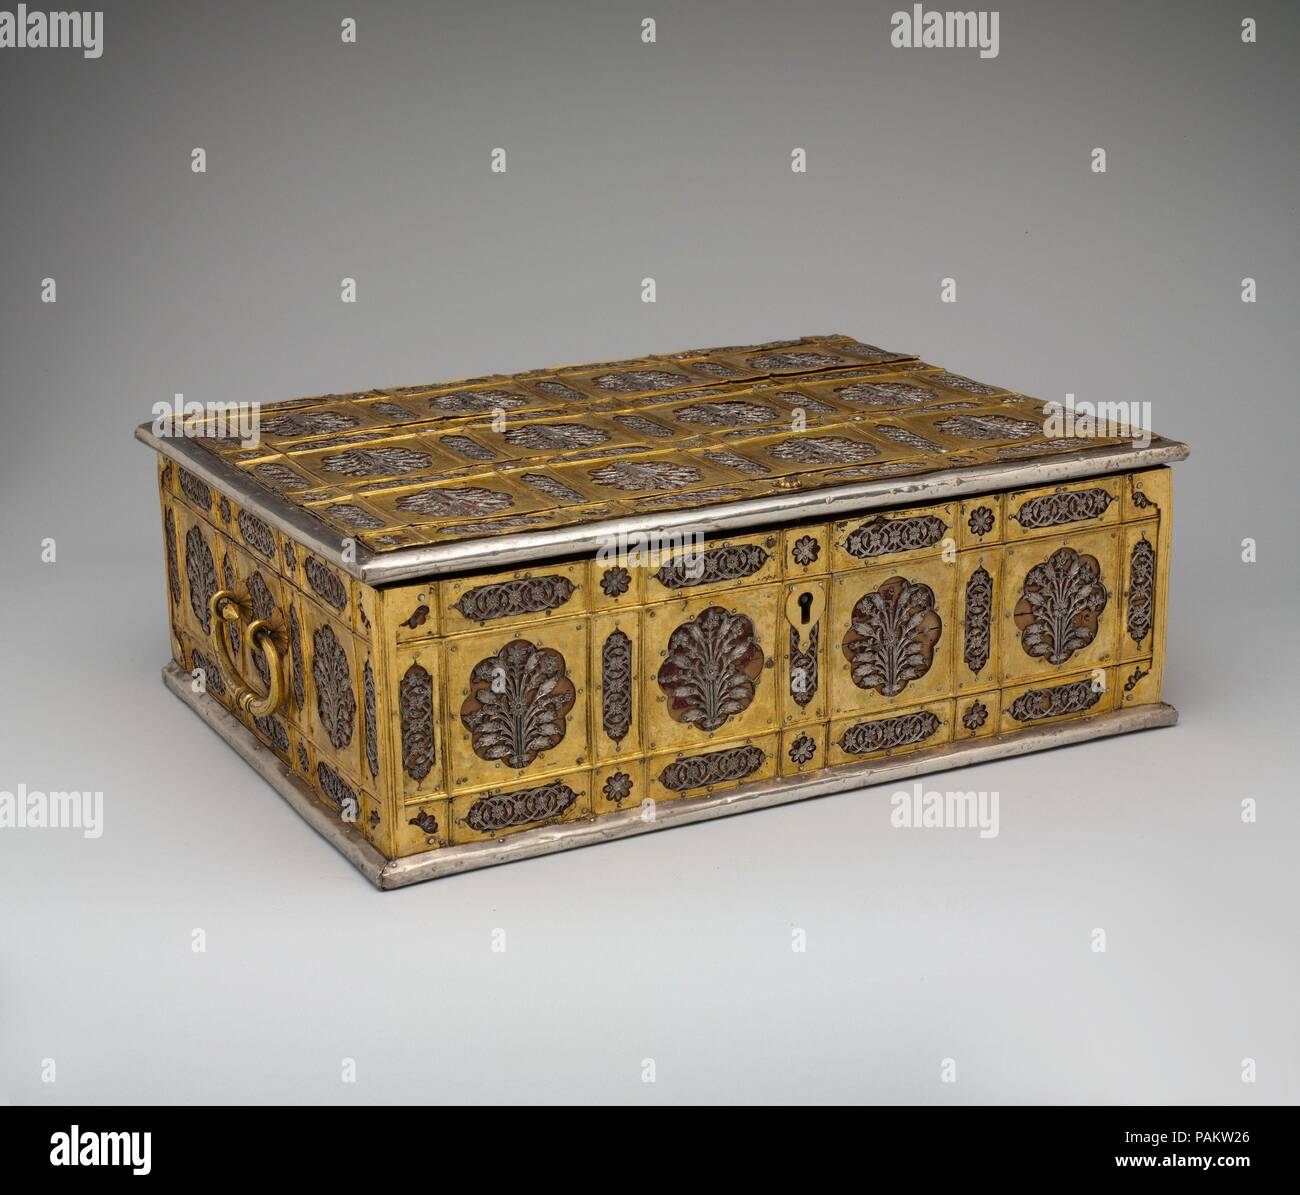 """Writing Box with Lattice and Flower Design. Dimensions: H. 5 3/8 in. (13.6 cm)   W. 16 3/8 in. (41.5 cm)  Depth 12 5/8 in. (32 cm). Date: mid-17th century.  The gilded copper sheets and silver plaques covering the exterior of this box are fashioned in a classic """"lattice and flower"""" variant of the flower style. Because of the technique of fastening the metal over the wood, the box has been attributed to Burhanpur, a city in the northern Deccan, where similar work is found in architecture. Museum: Metropolitan Museum of Art, New York, USA. Stock Photo"""